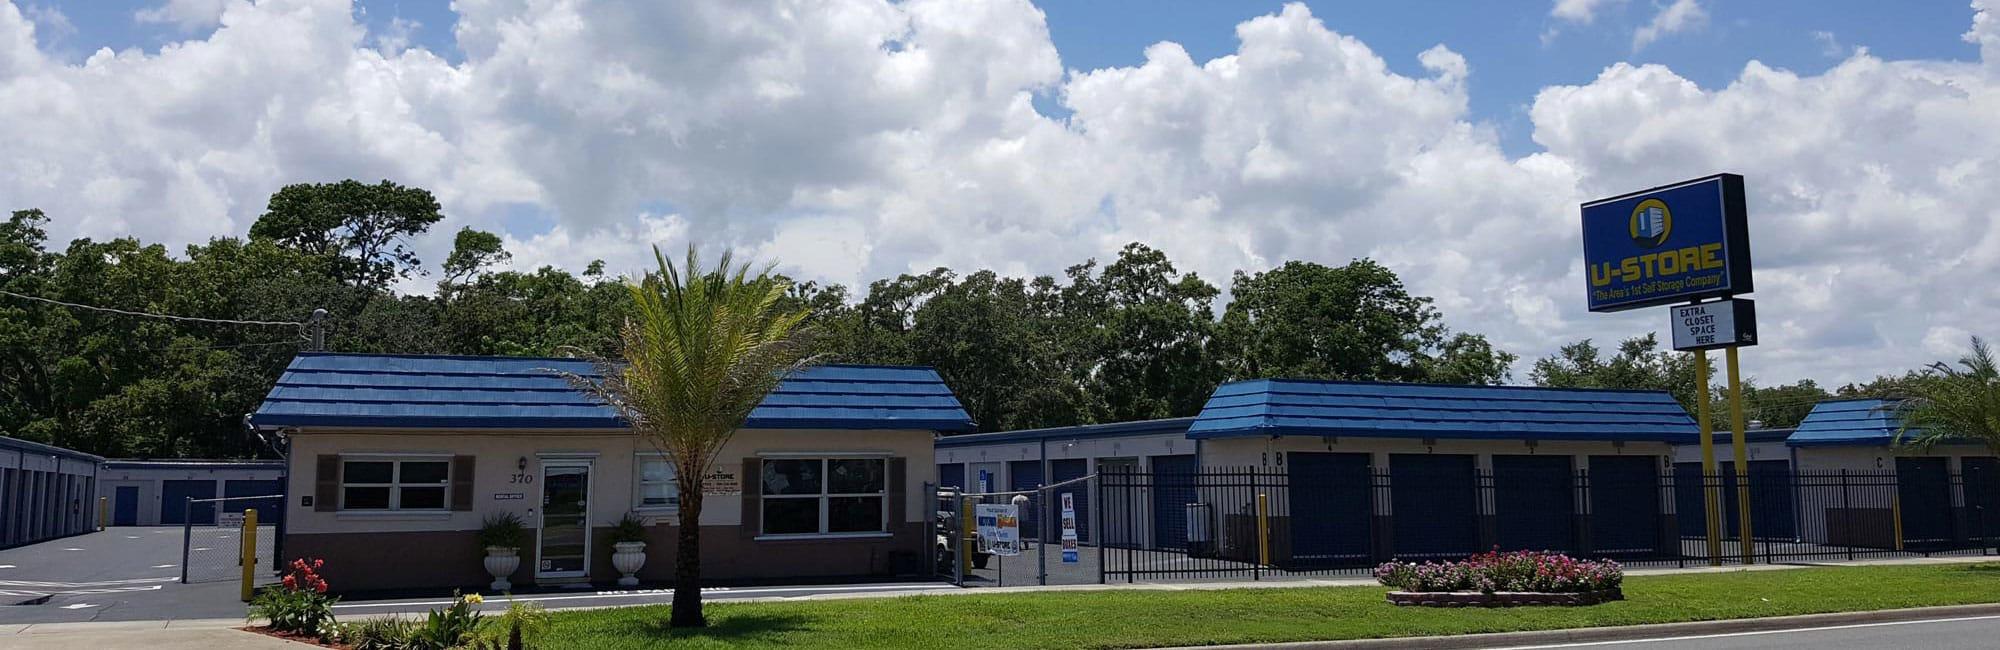 Self Storage Daytona Beach